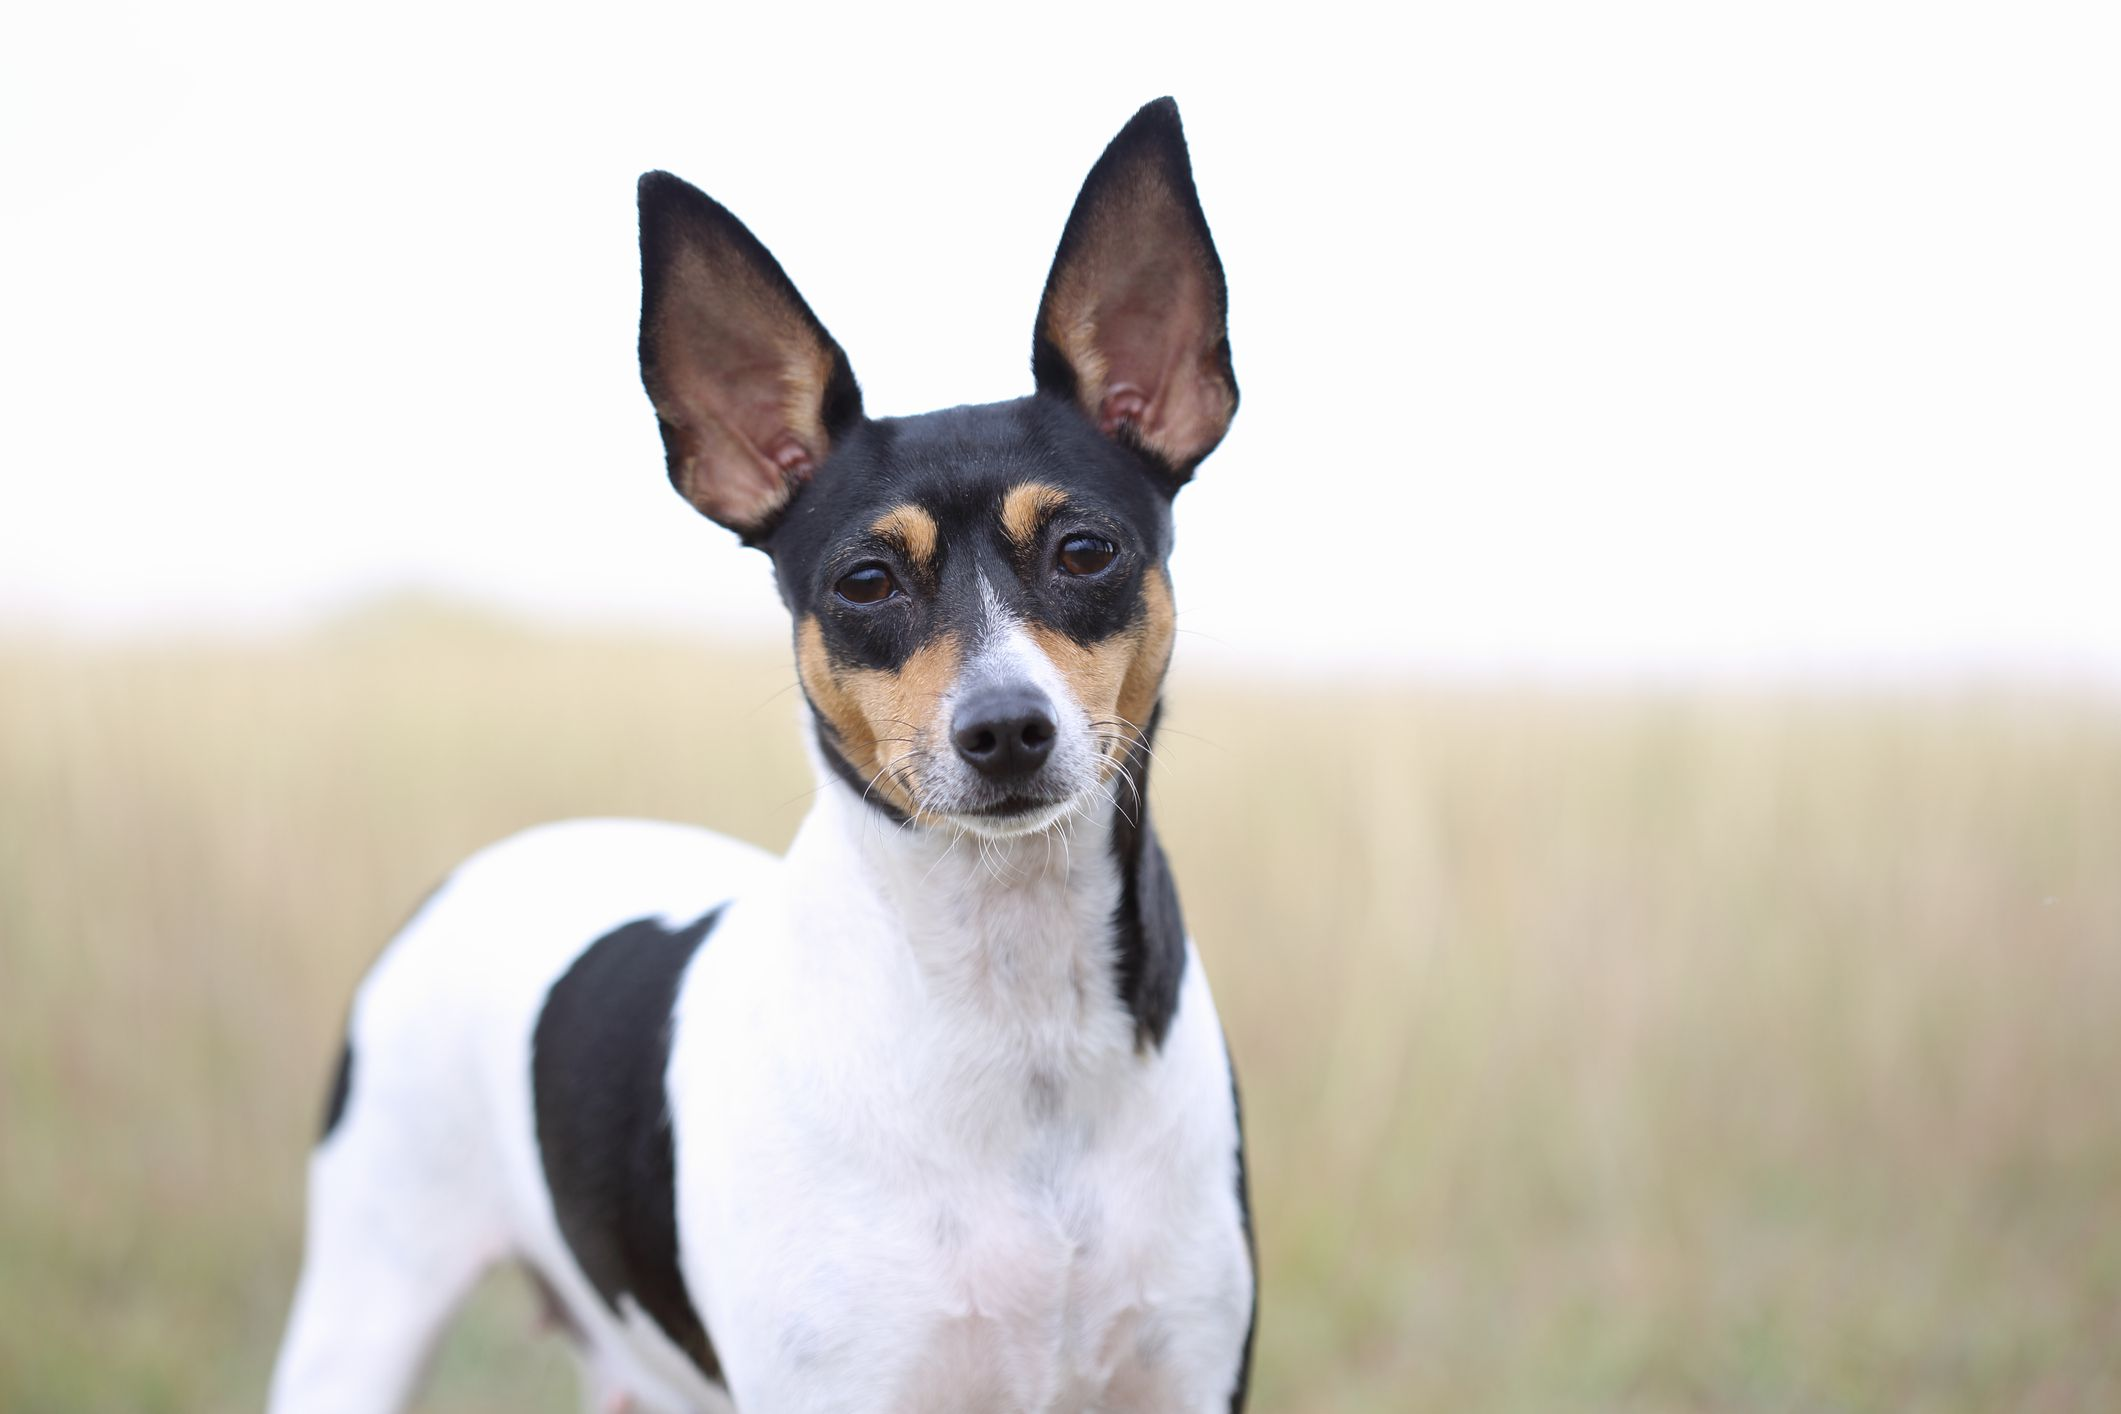 Toy Fox Terrier outside in front of tall grass.